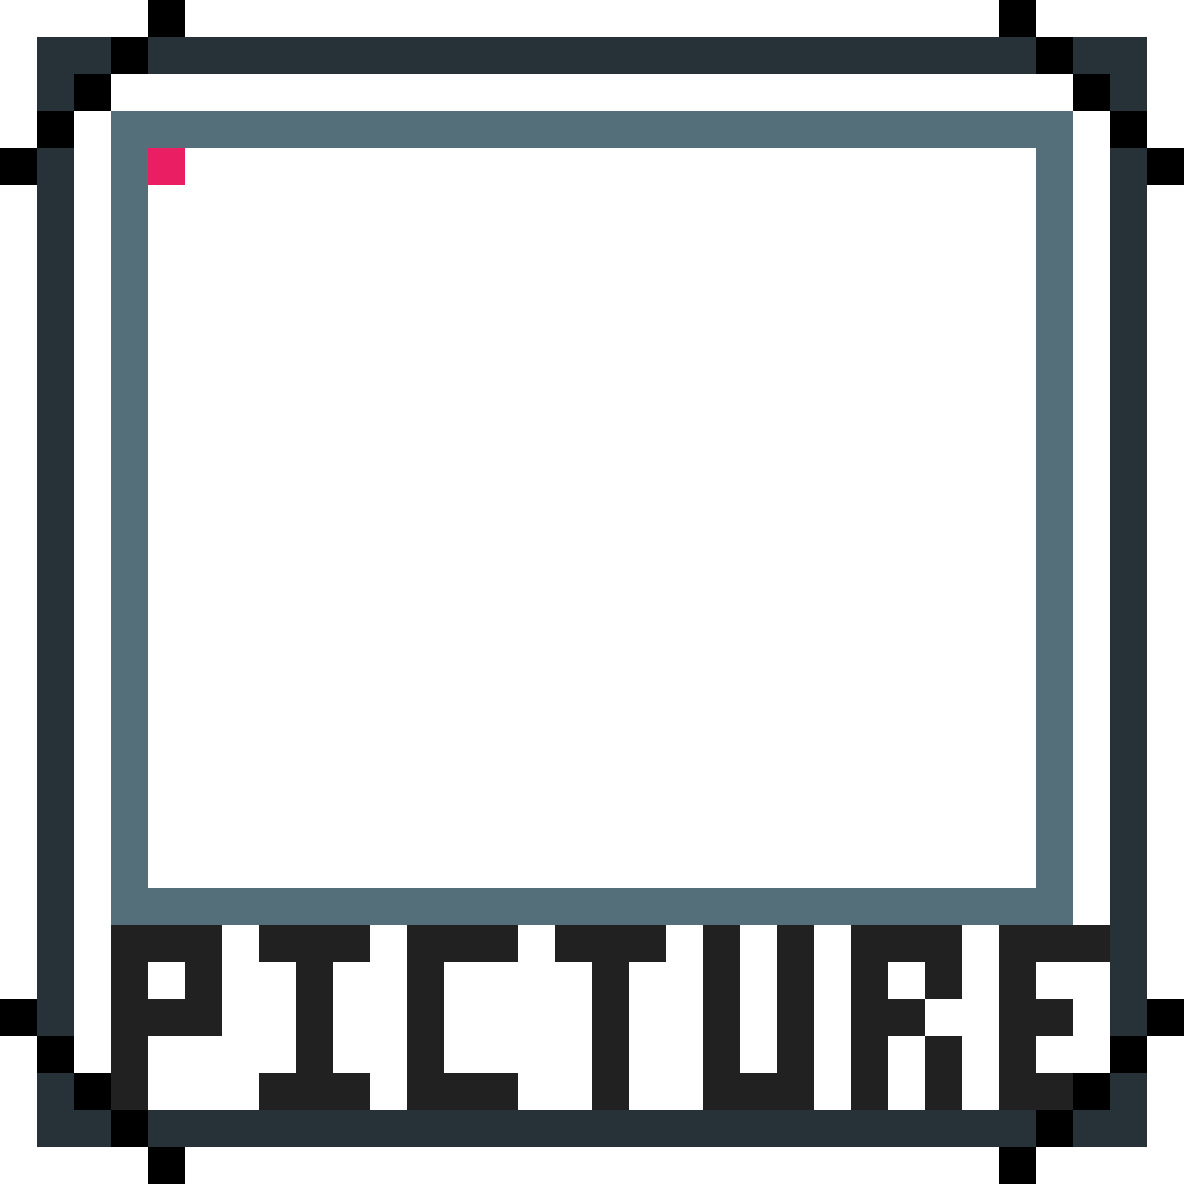 Shy clipart shy child. Pixilart picture time read